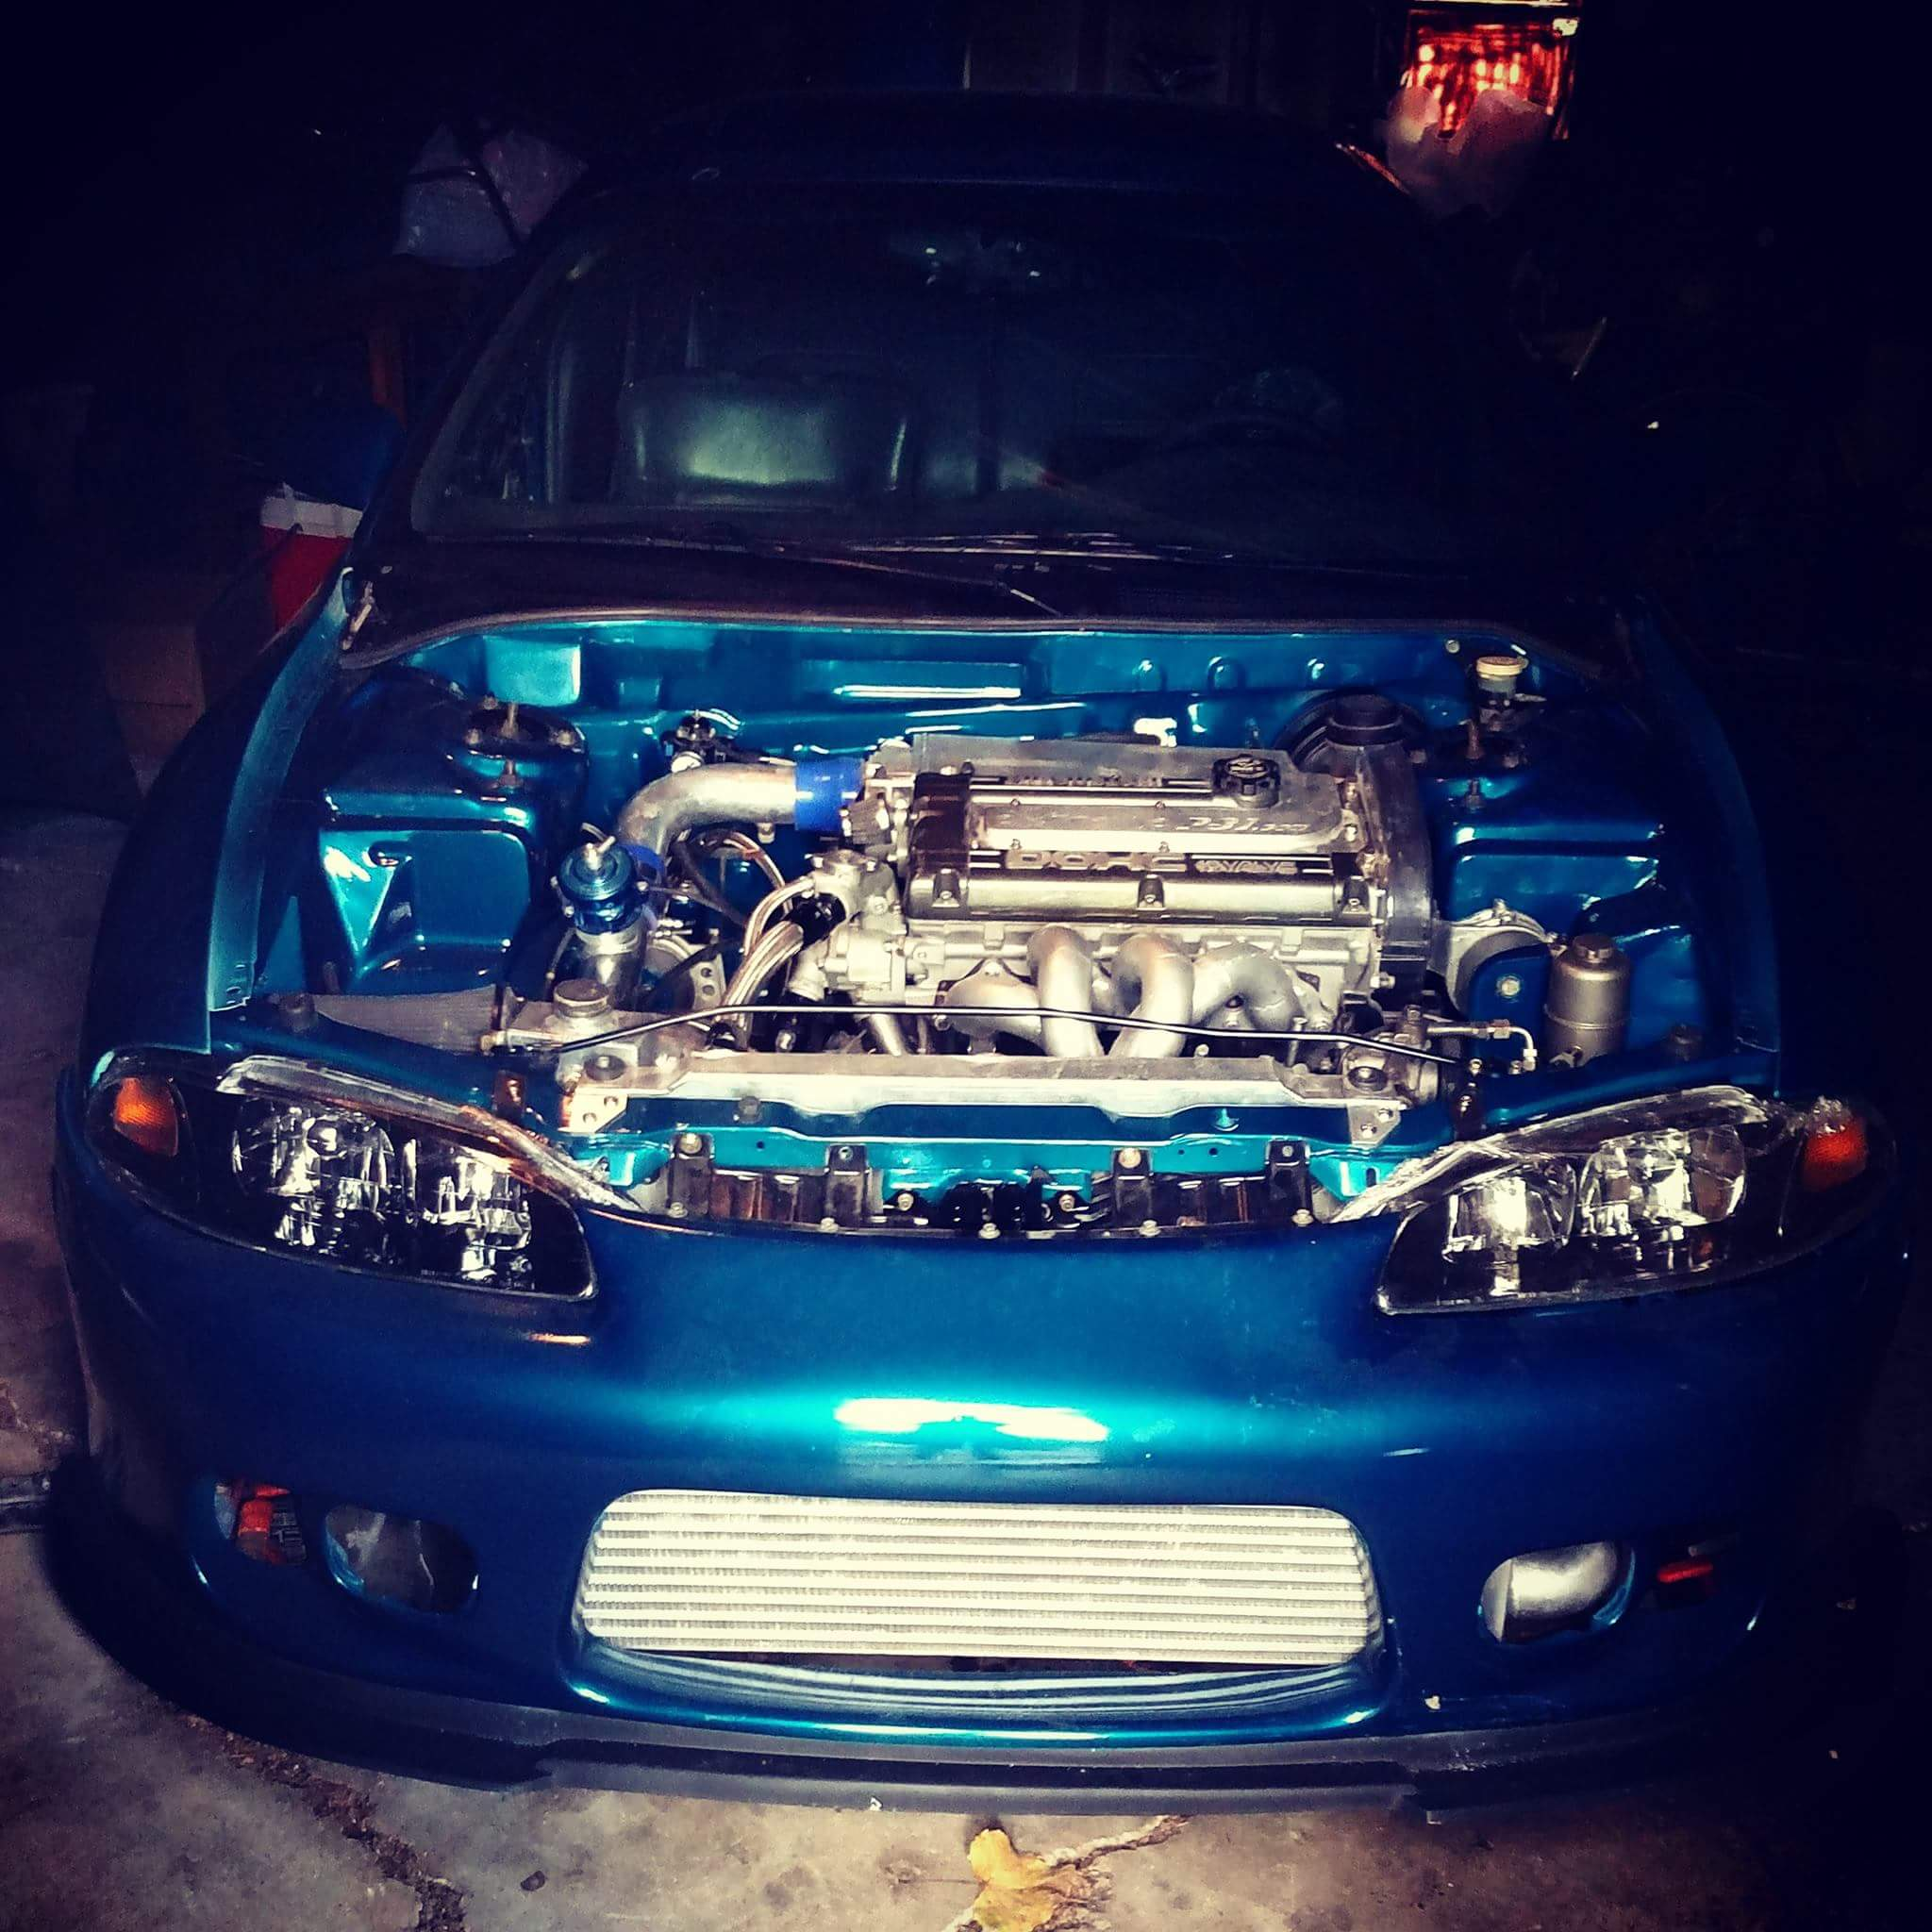 stage 3 \u201ctucked\u201d mil spec engine harness (95 99 2g dsm) \u2013 www ohm2g dsm stage 3 \u201ctucked\u201d mil spec engine harness (95 99